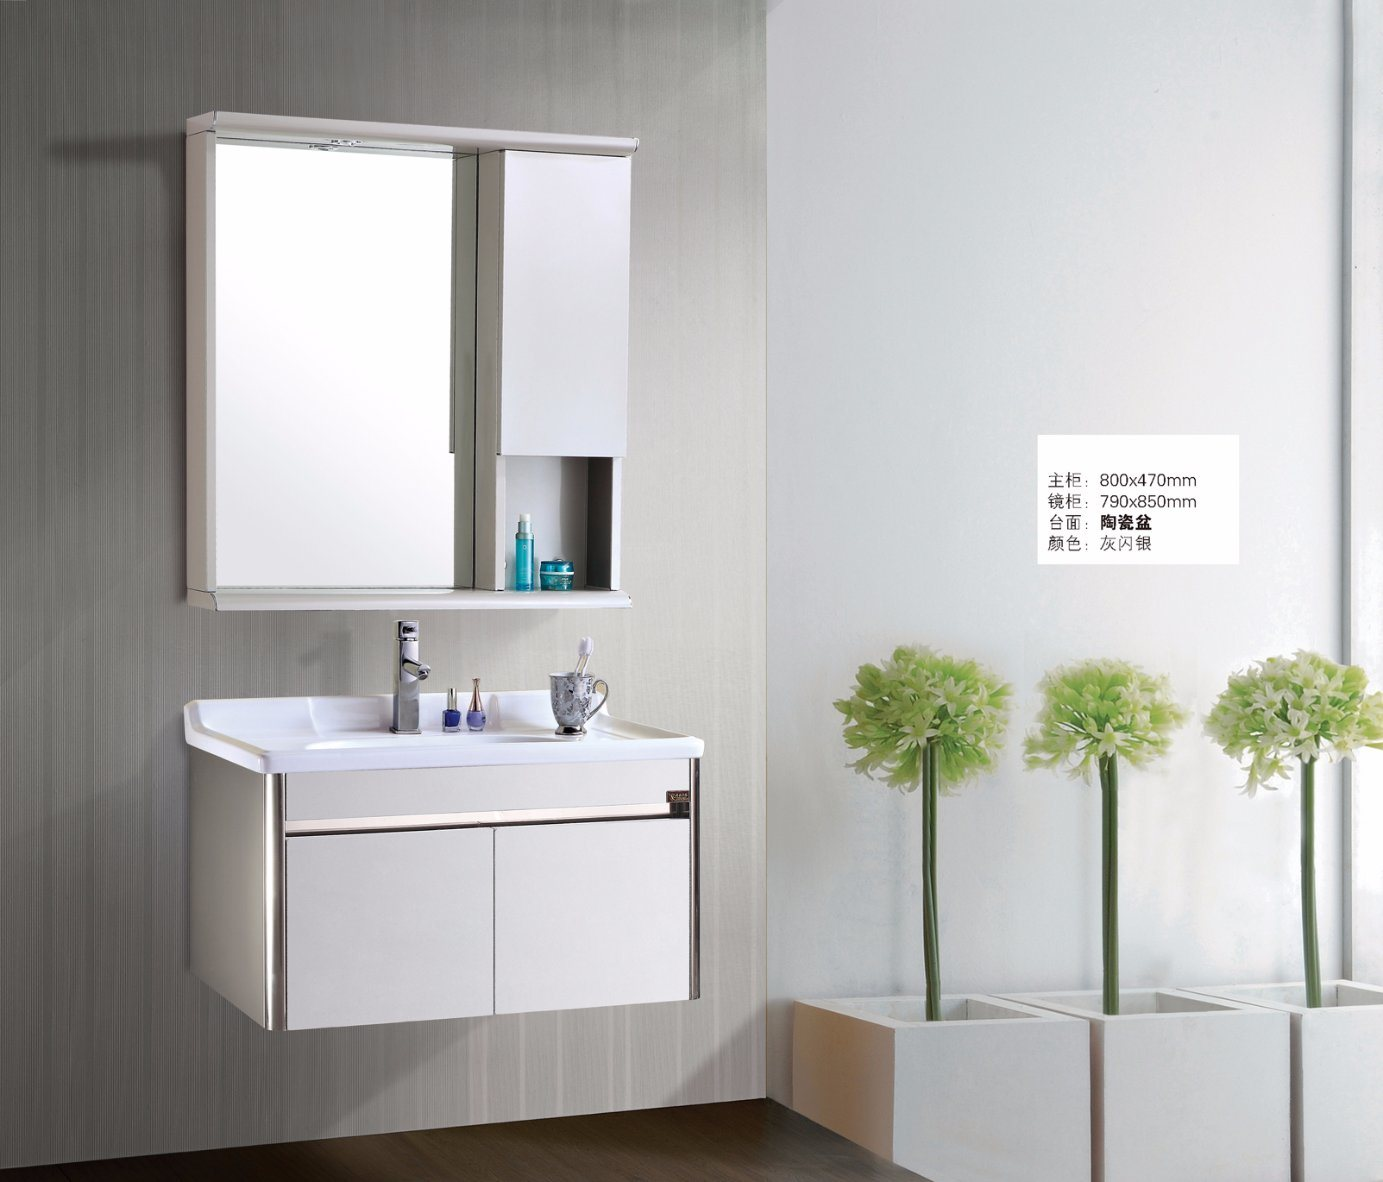 China Steel Stainless Bathroom Cabinet Tp8607/Tp8633/Tp8636/Tp8646 ...